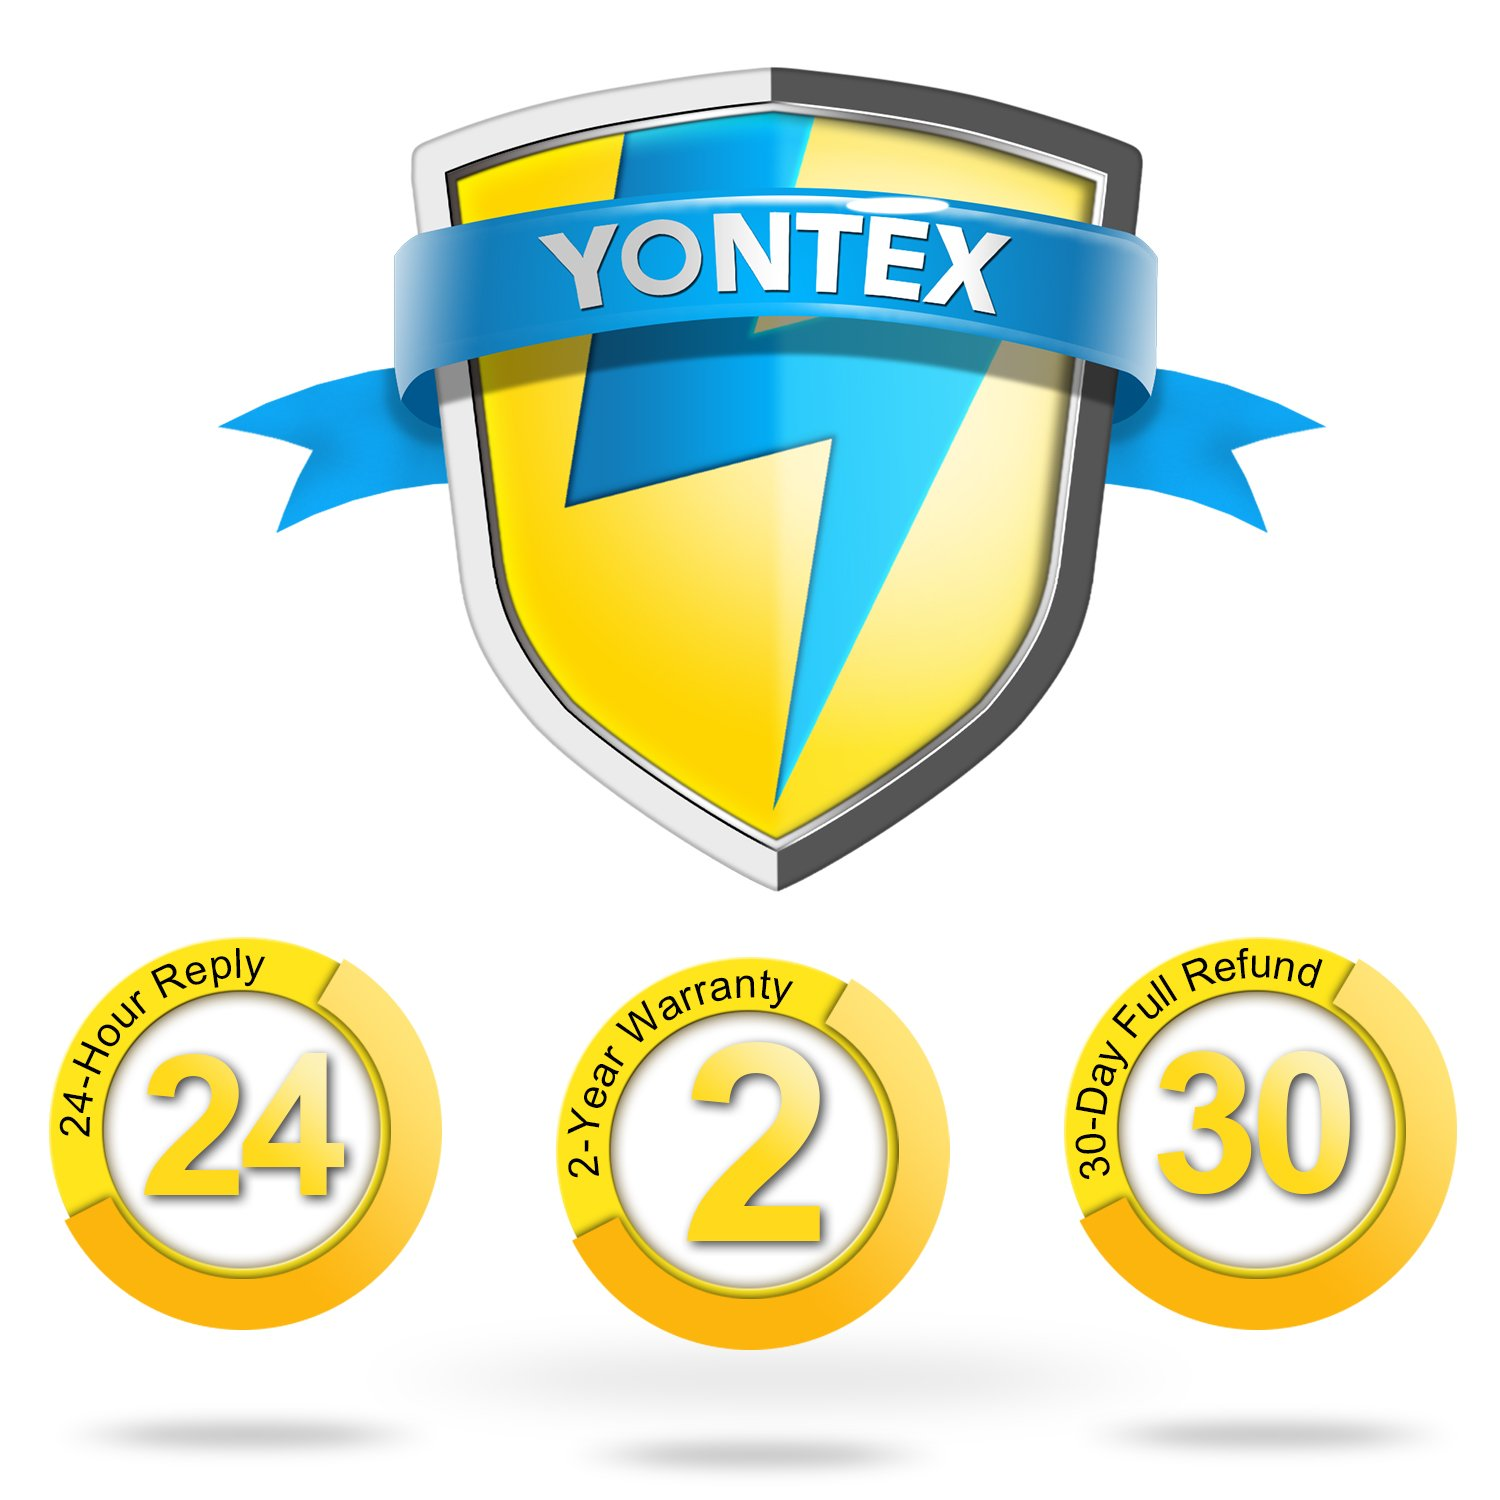 YONTEX Battery Model iP 6Plus - Brand New 0 Cycle - with Replacement Repair Tool Kits and Screen Protector [2 Years Warranty] by YONTEX (Image #7)